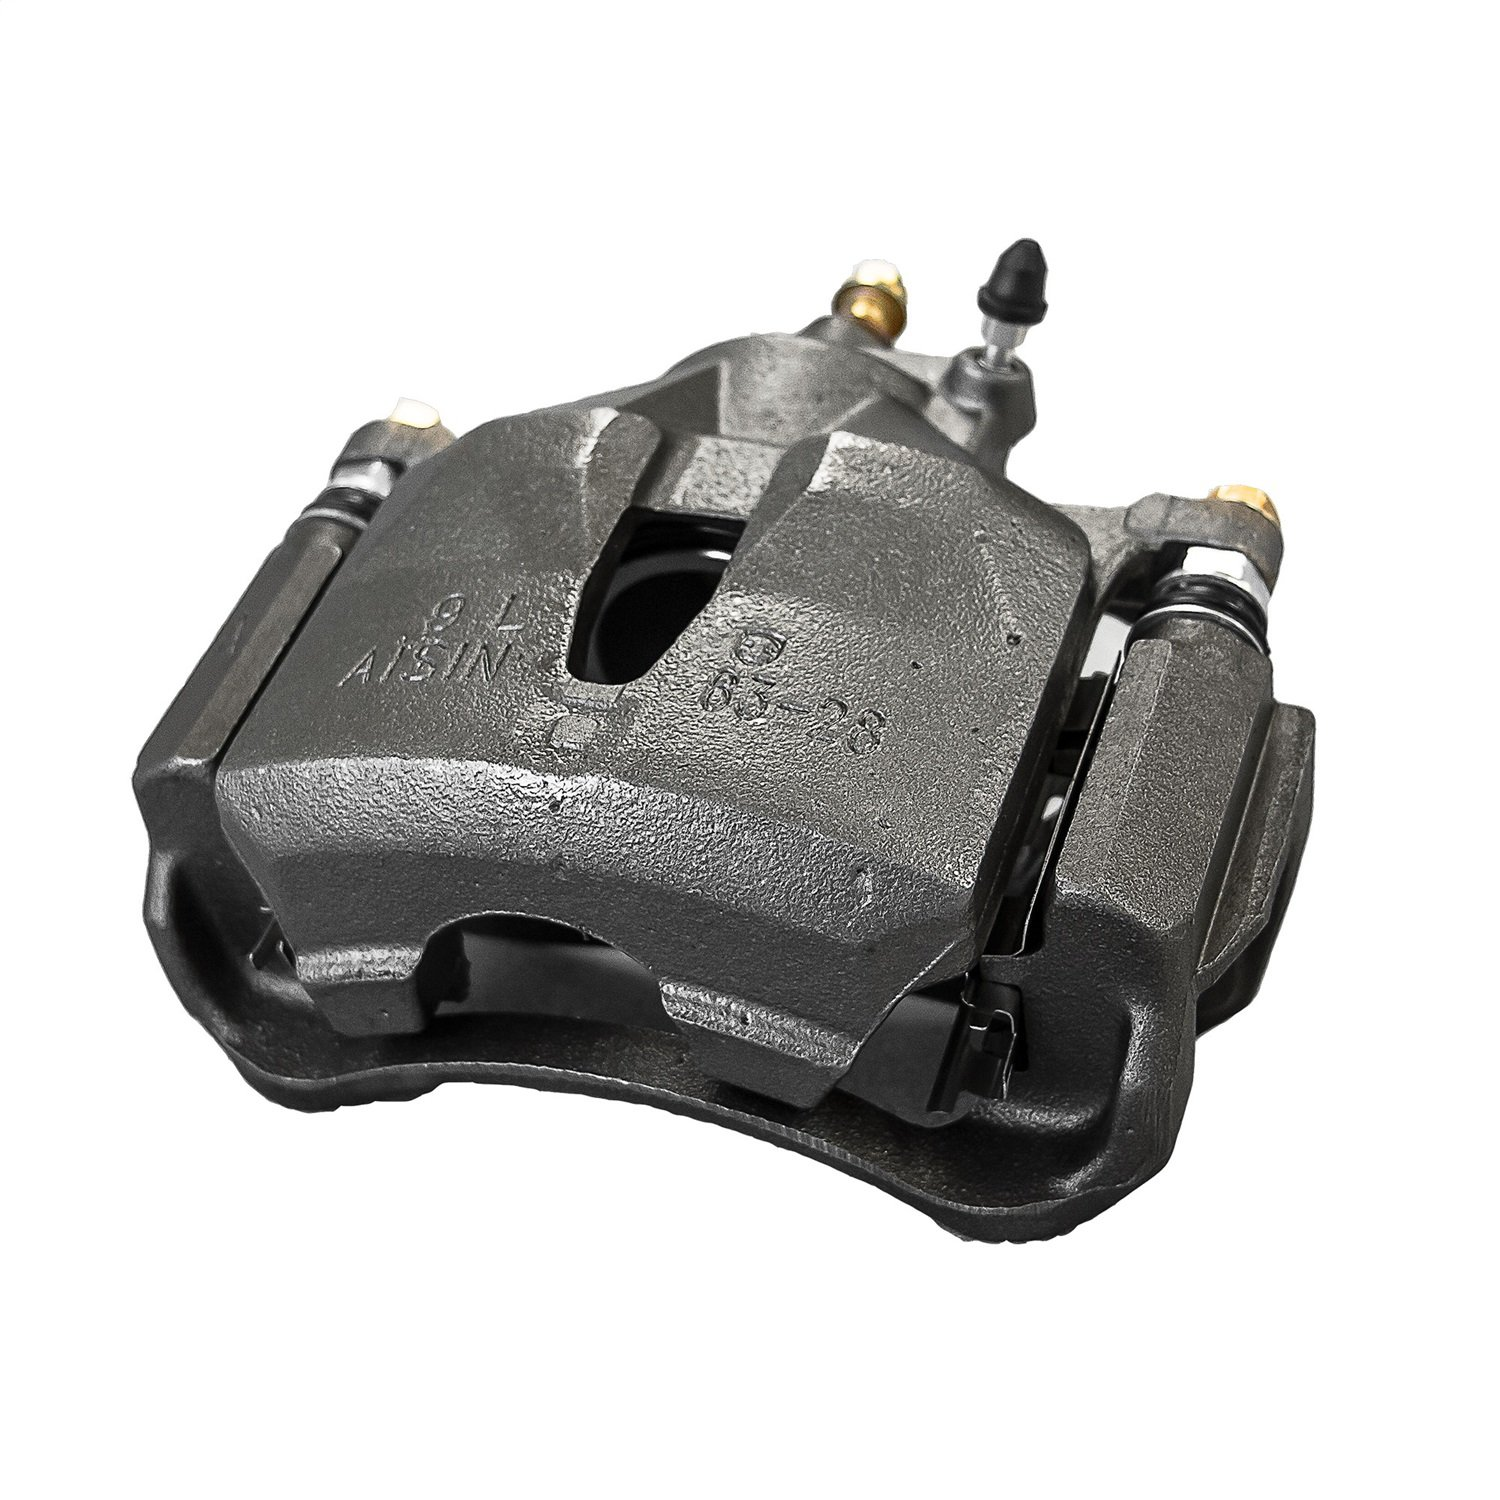 Power Stop L3412A Rear Autospecialty OE Replacement Brake Caliper